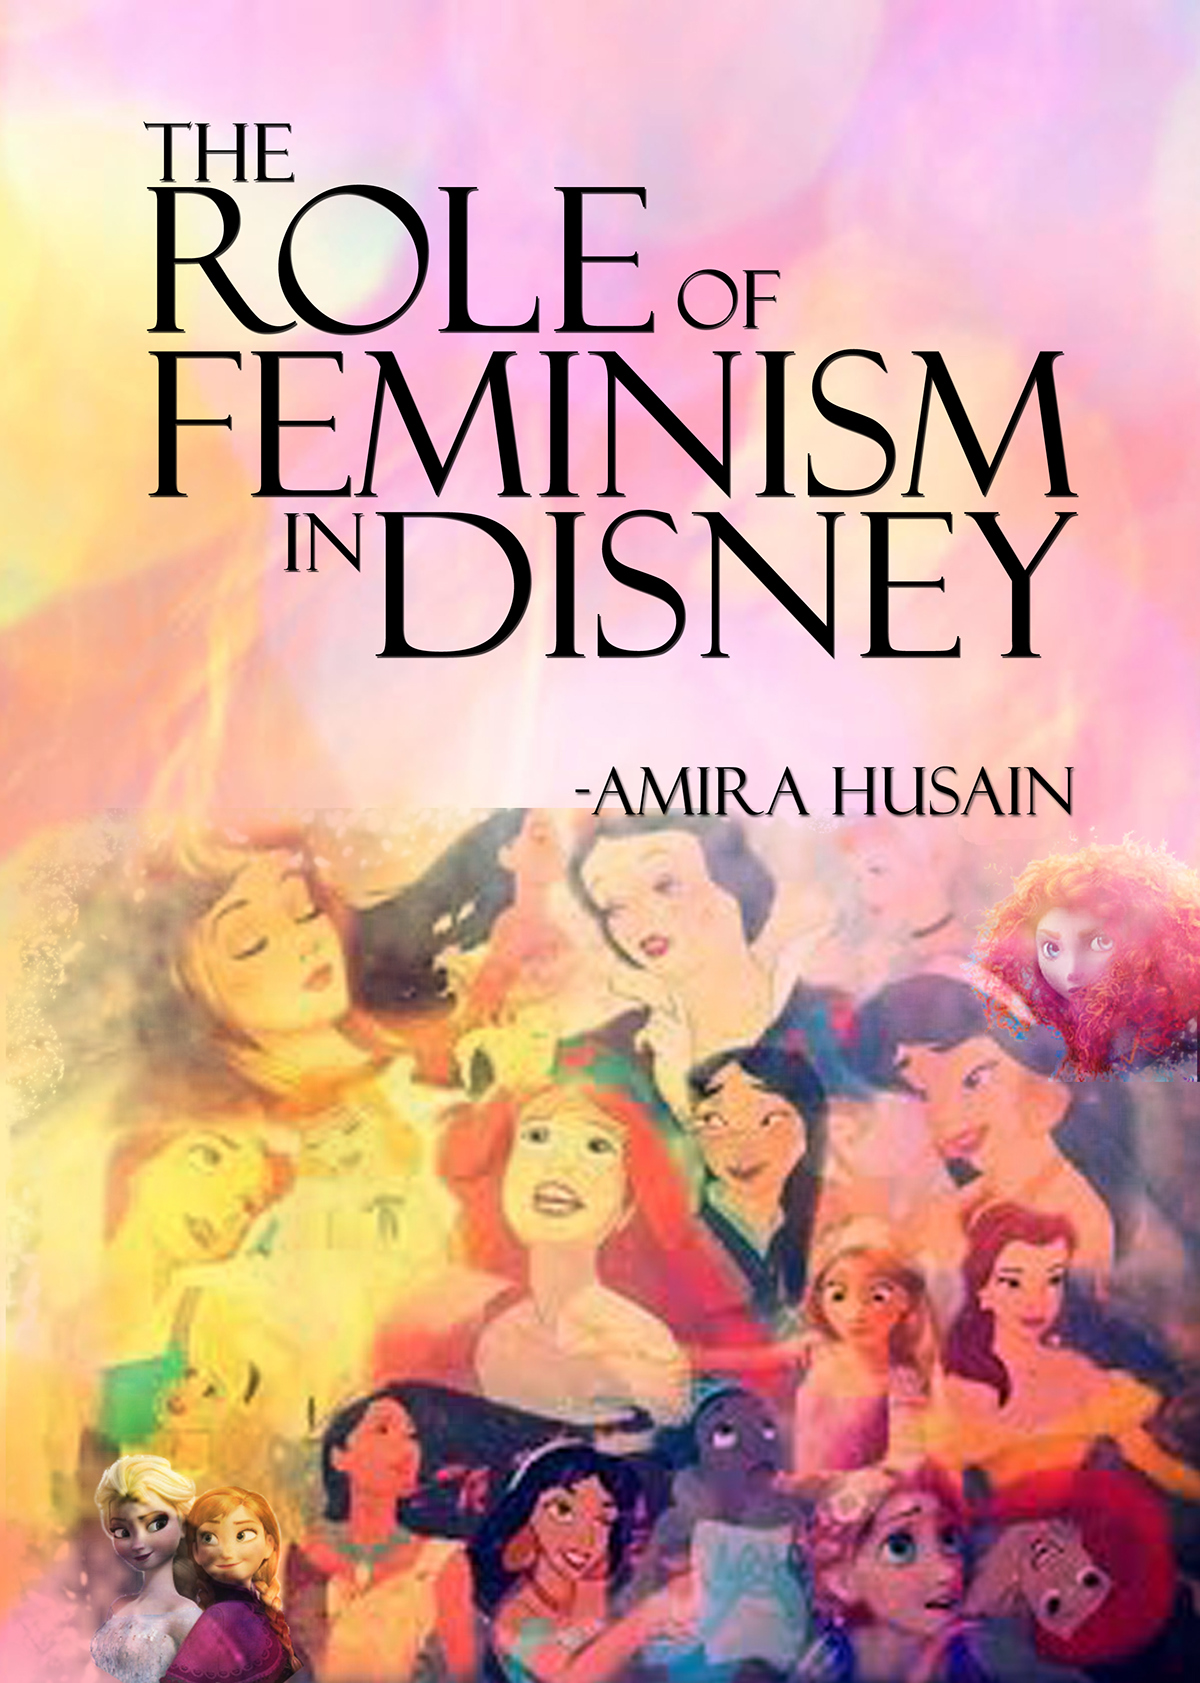 feminism in novel makaan of paigham